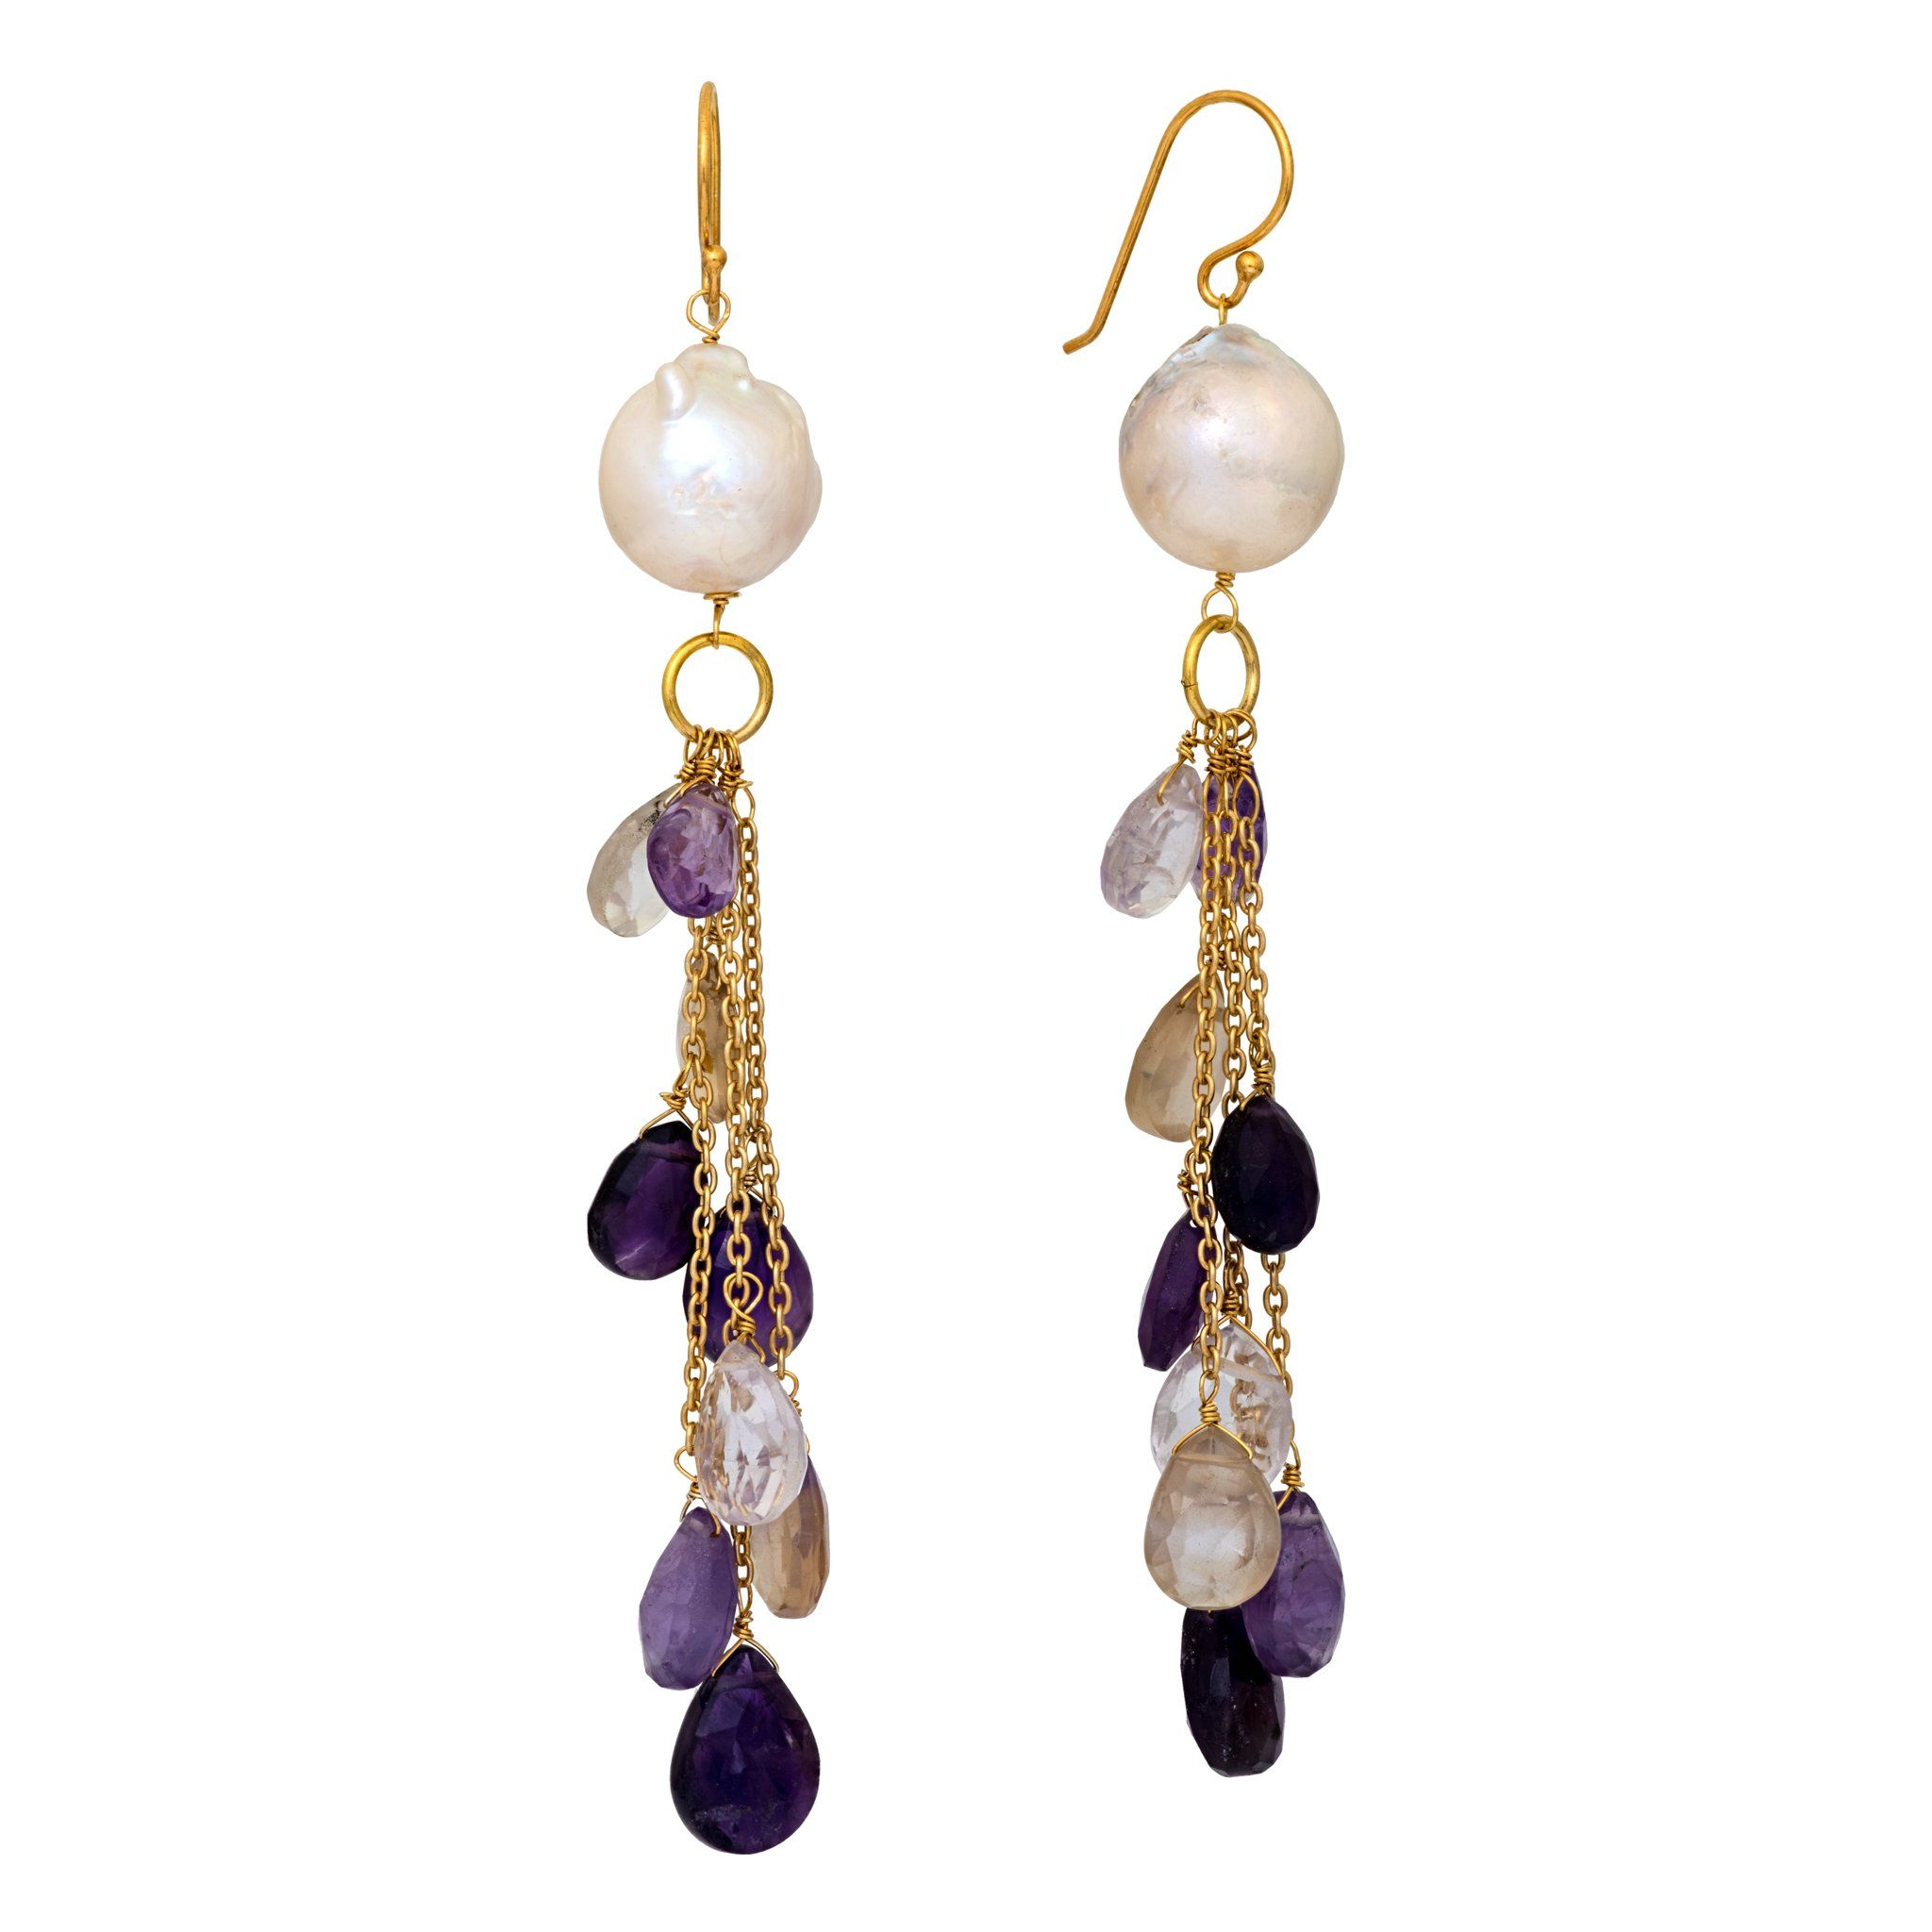 COCO pearl and amethyst long earrings with drops - MadamSiam